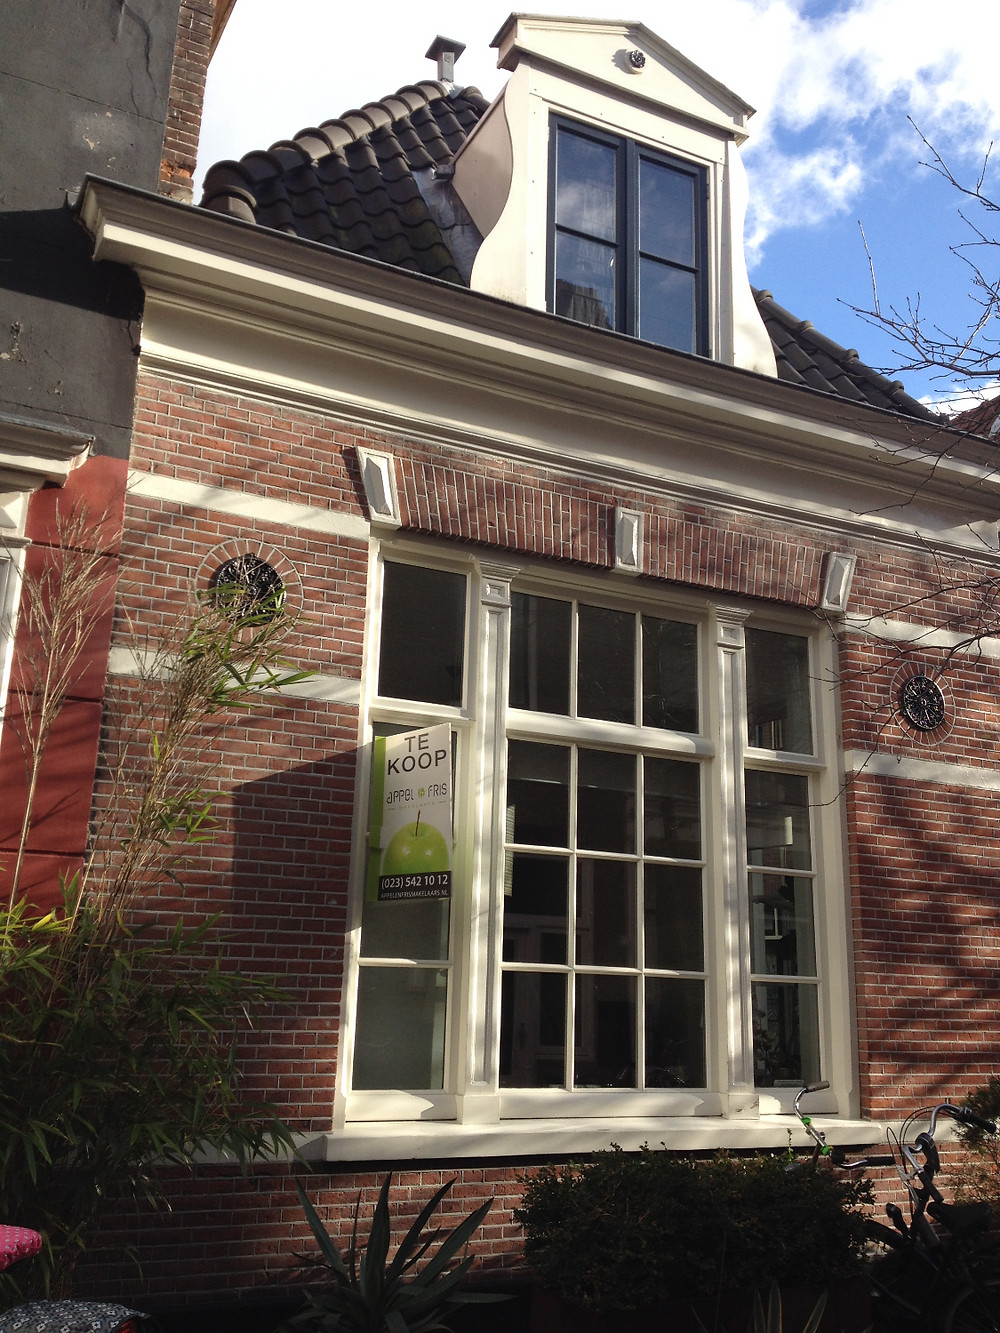 Holland Real Estate Architecture